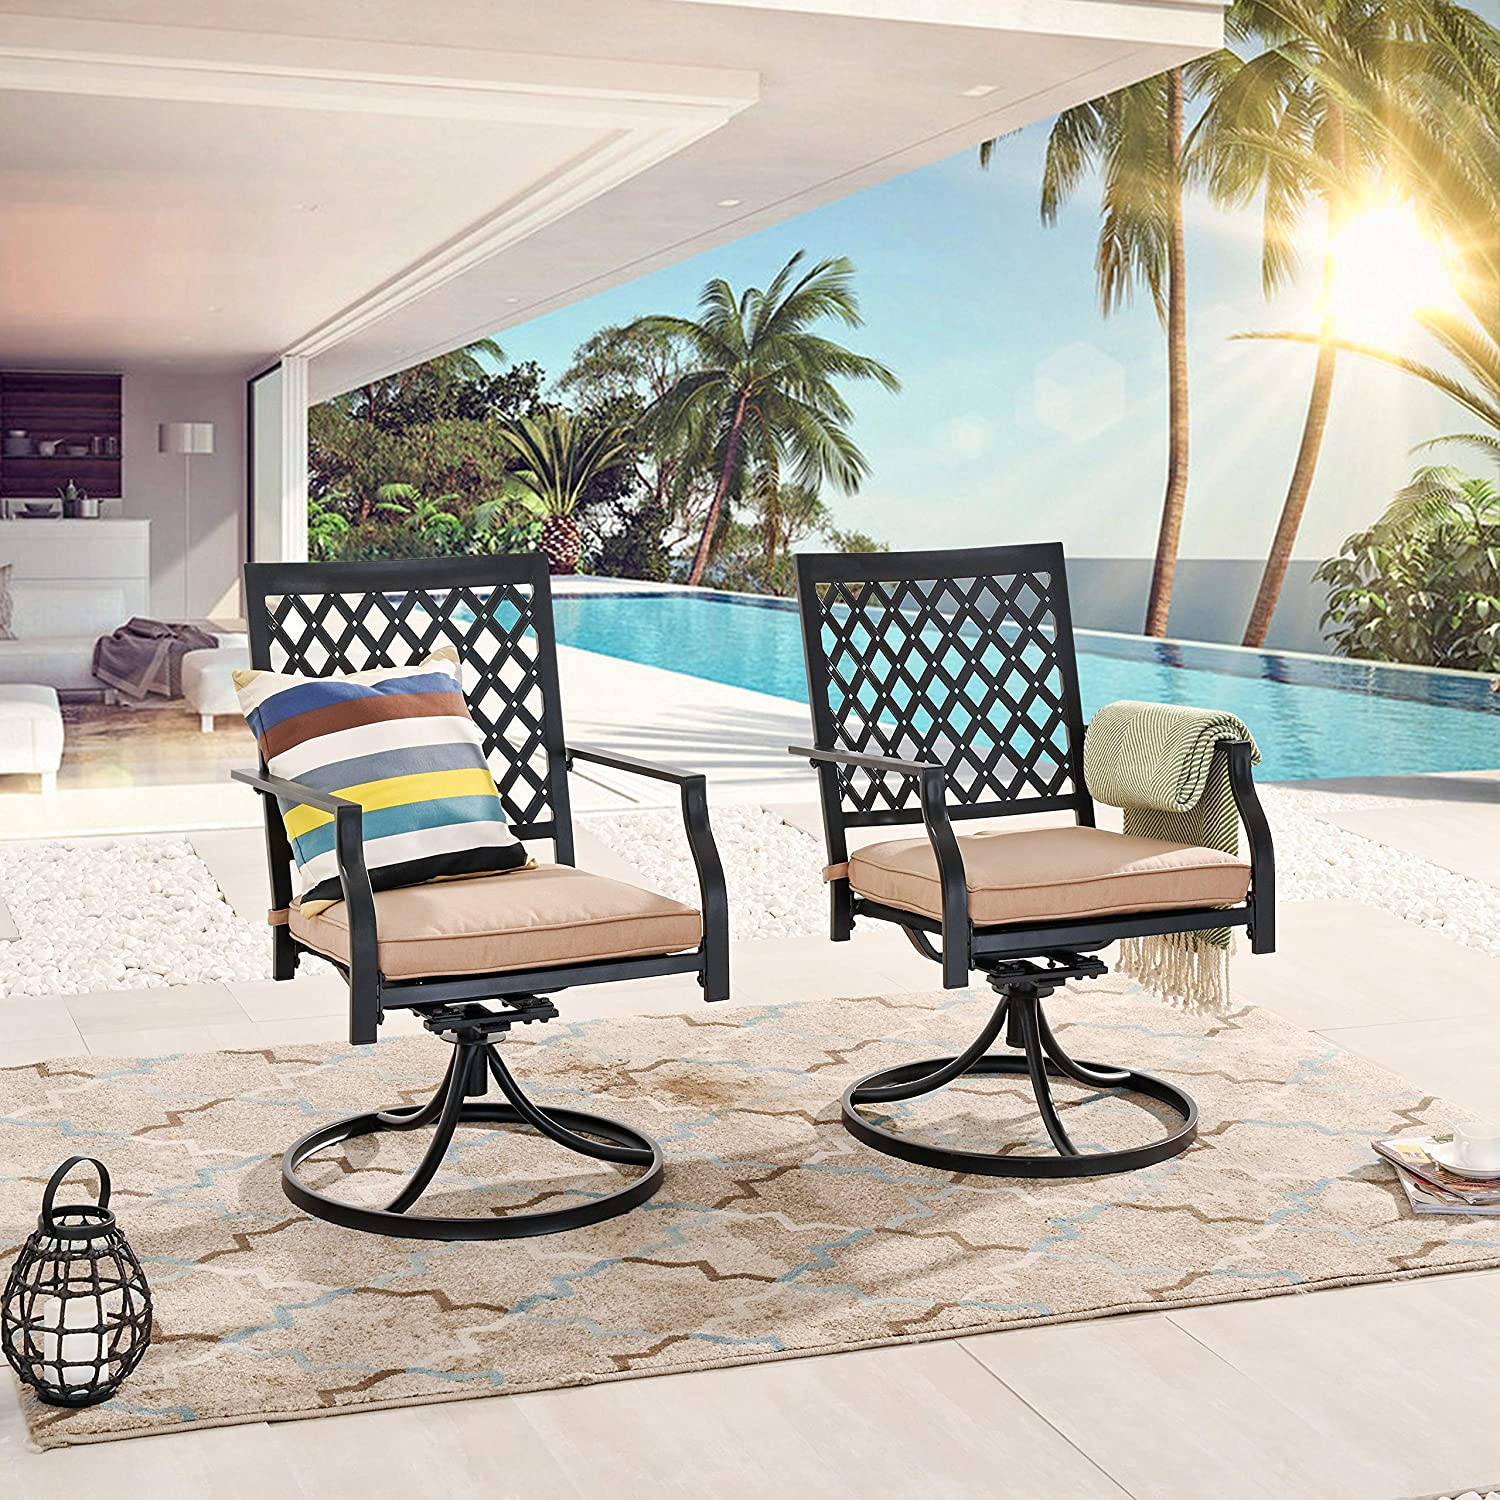 LOKATSE HOME Patio Swivel Dining Chairs Set of 2 with Cushion Bistro Outdoor Furniture for Garden Backyard Poolside, Beige